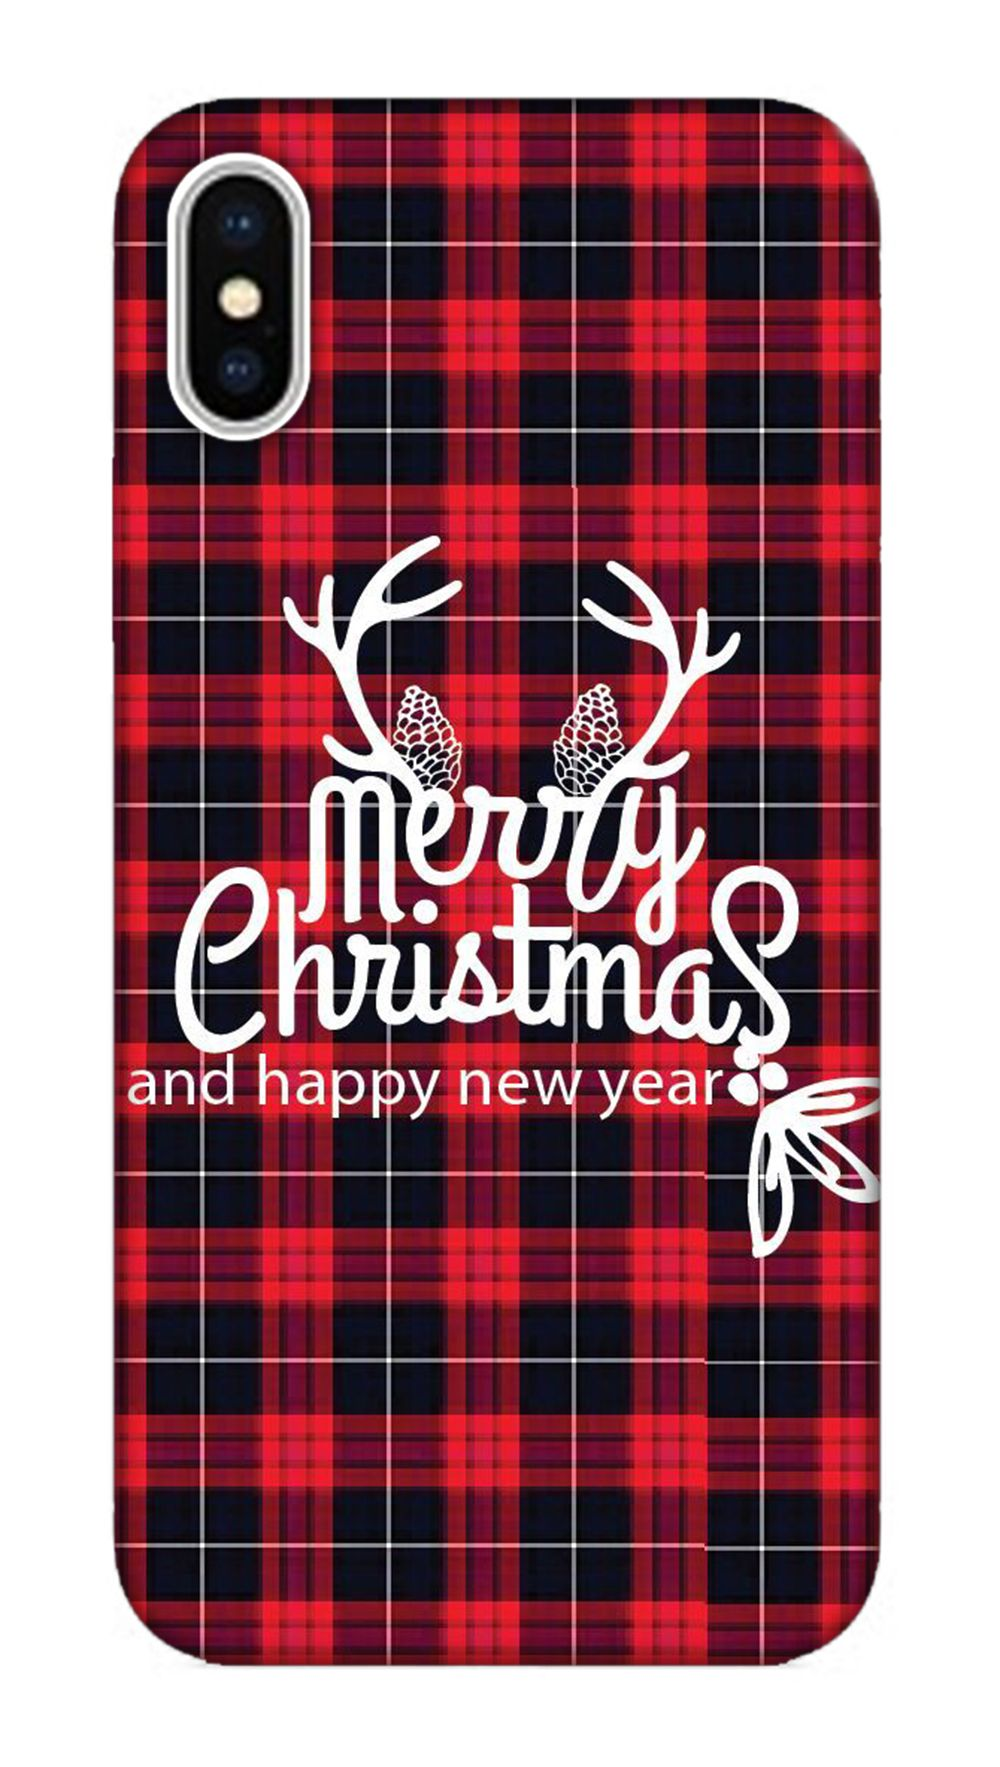 25 cutest iphone 87 wallpaper case cover merry christmas and happy new year